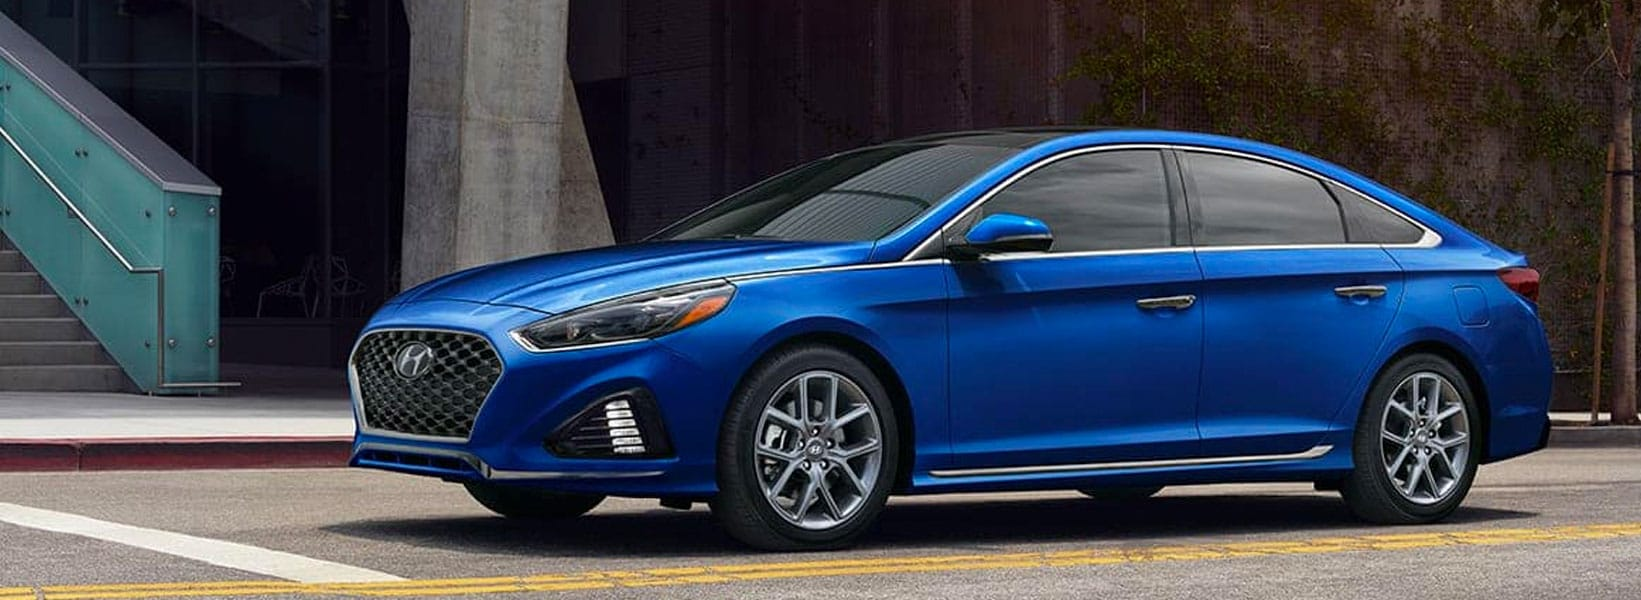 2019 Hyundai Sonata Reviews Chicago IL